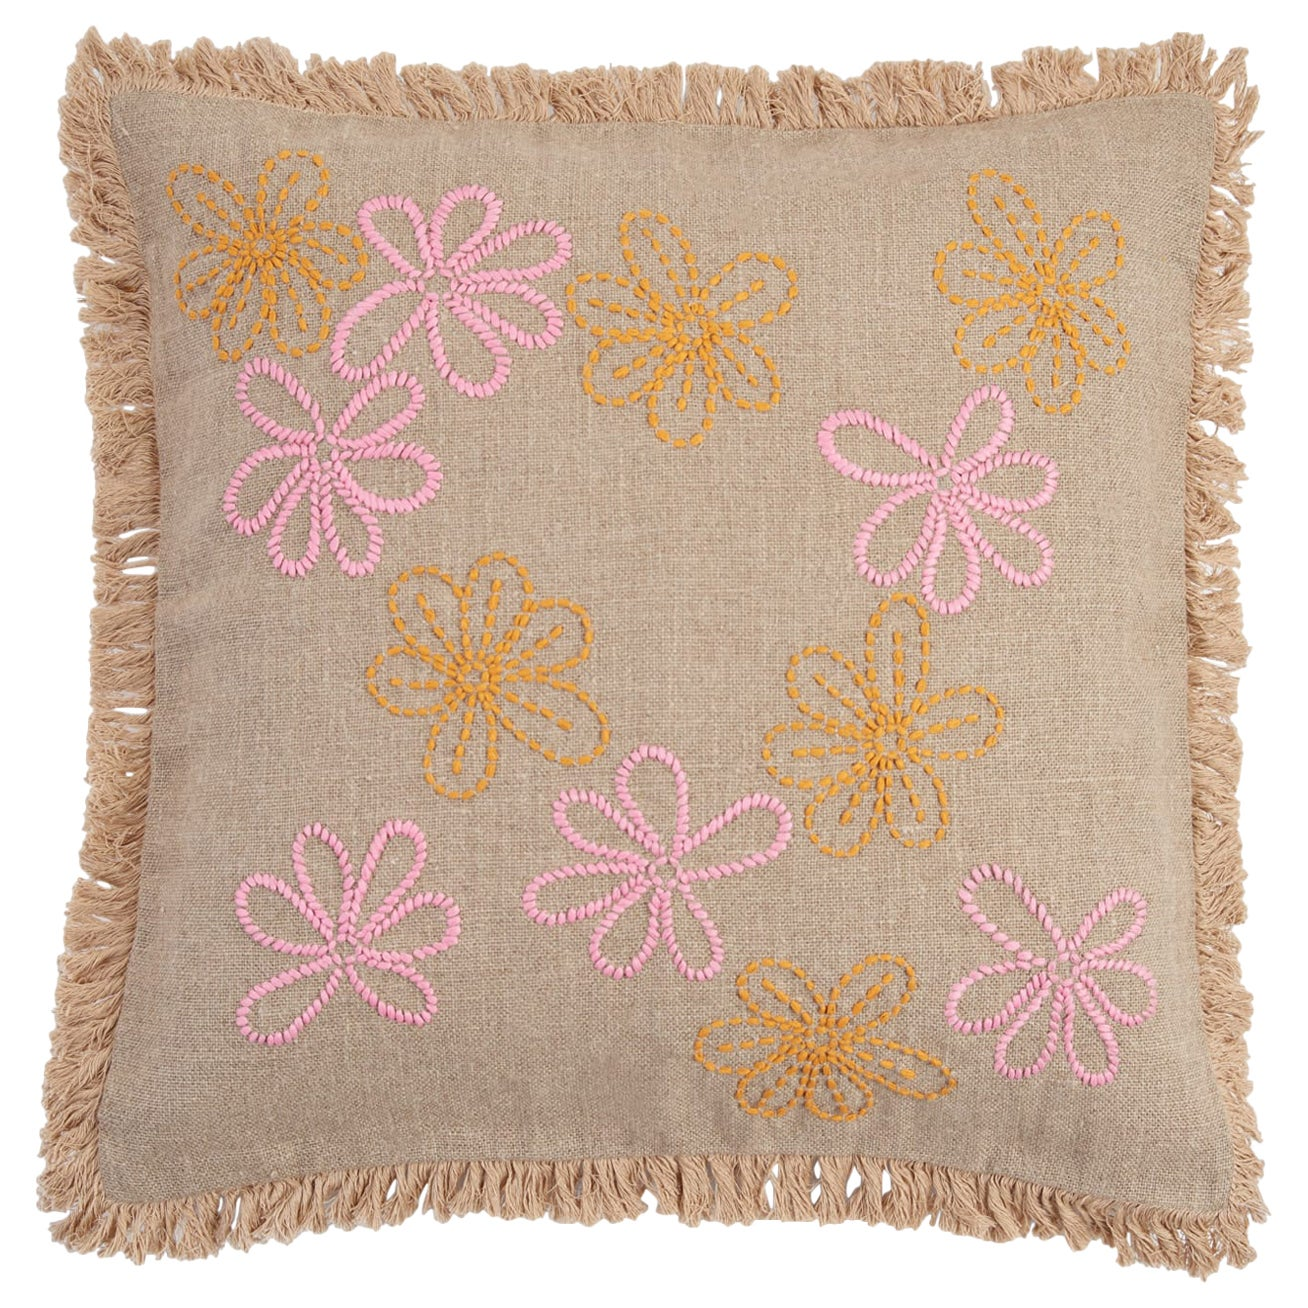 Stall, Hand Embroidered Floral Cushion by Jupe by Jackie